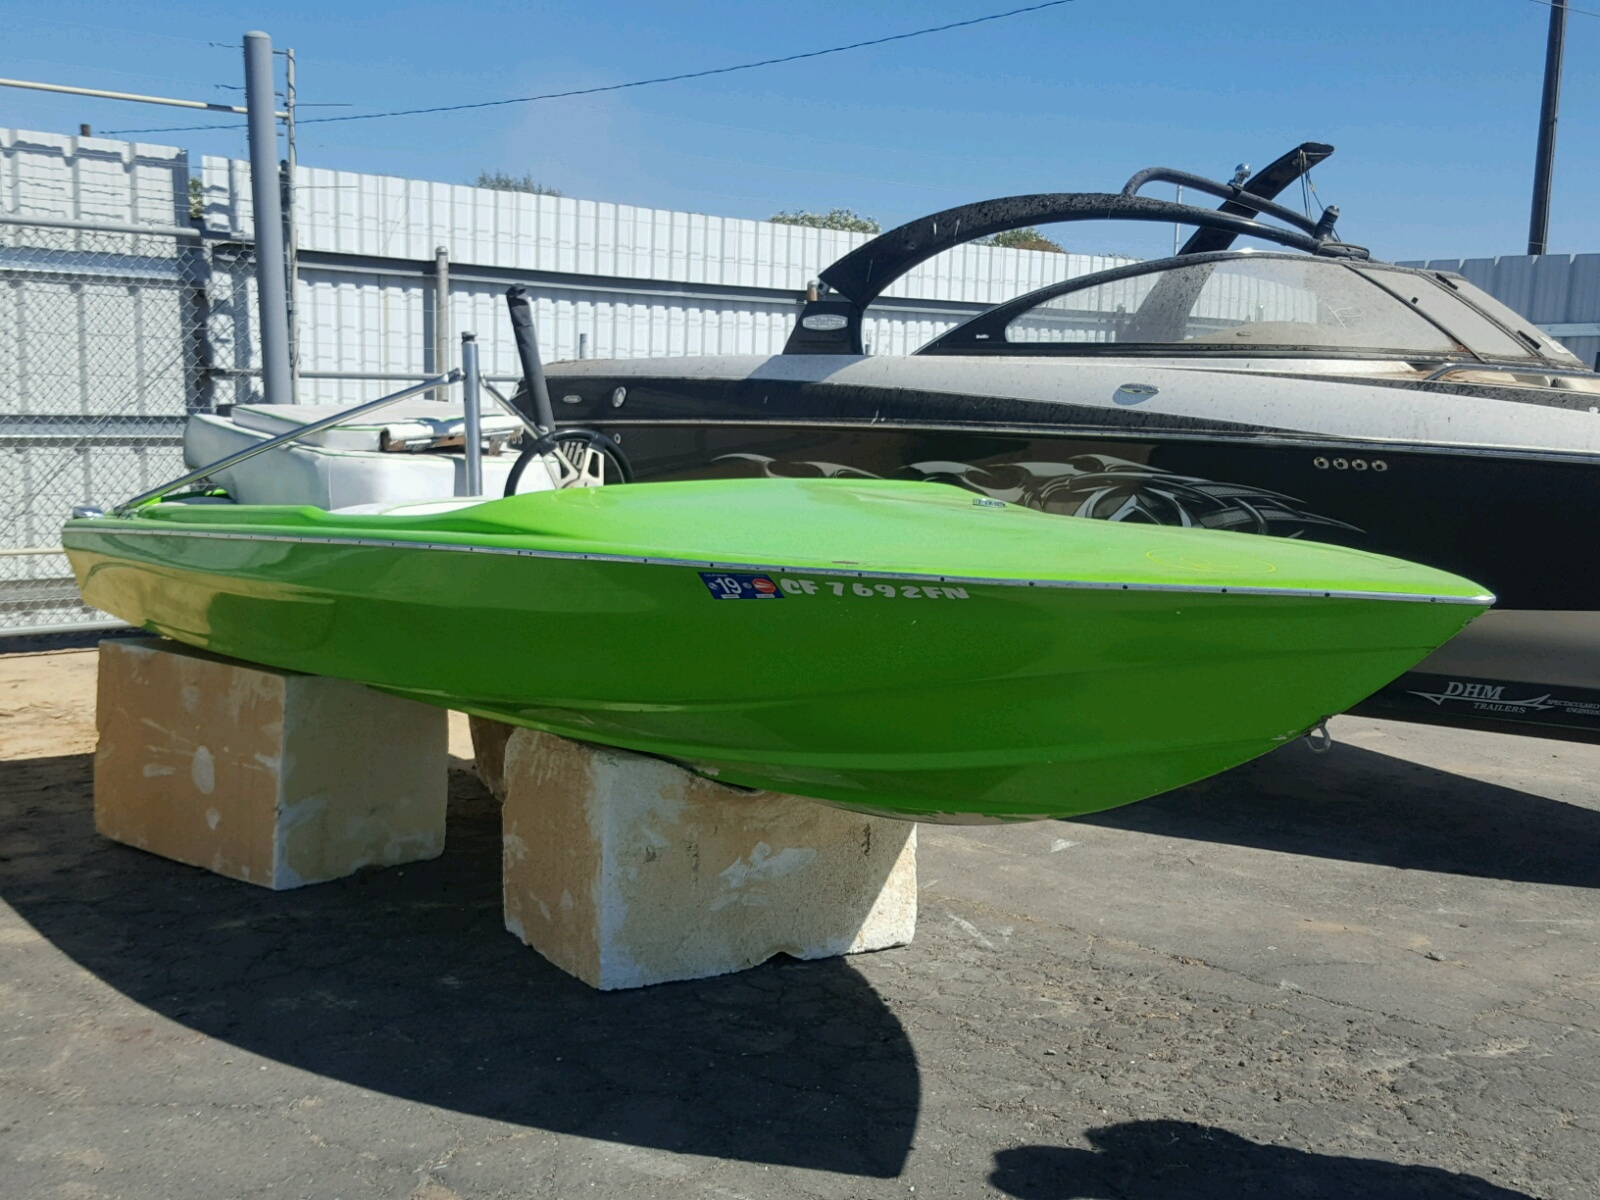 Salvage 1975 Modf BOAT for sale